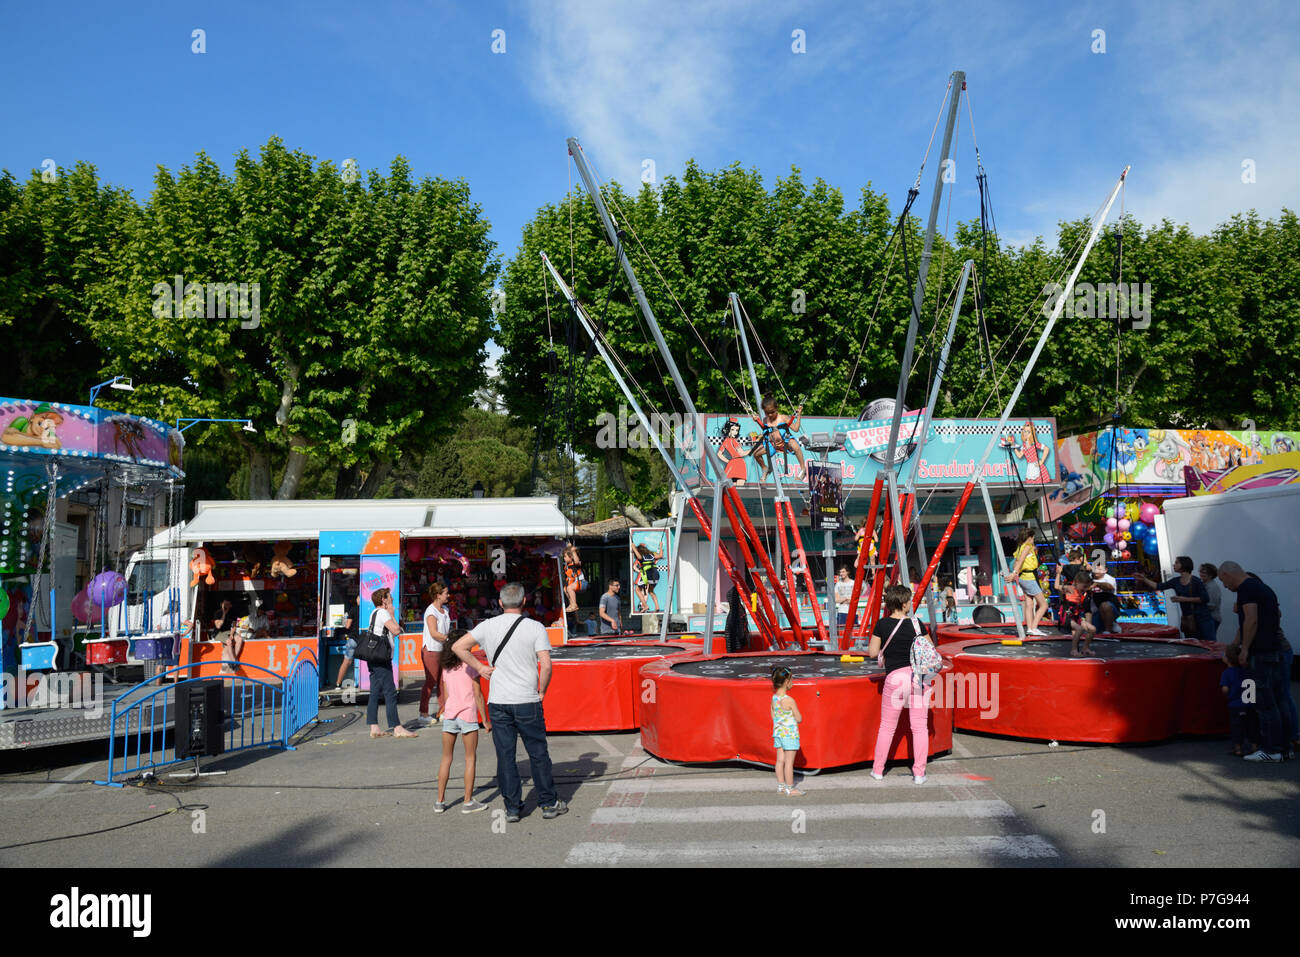 Fun Fair and Elasticated Trampoline or Bungee Trampoline Harness Vaison-la-Romaine France - Stock Image